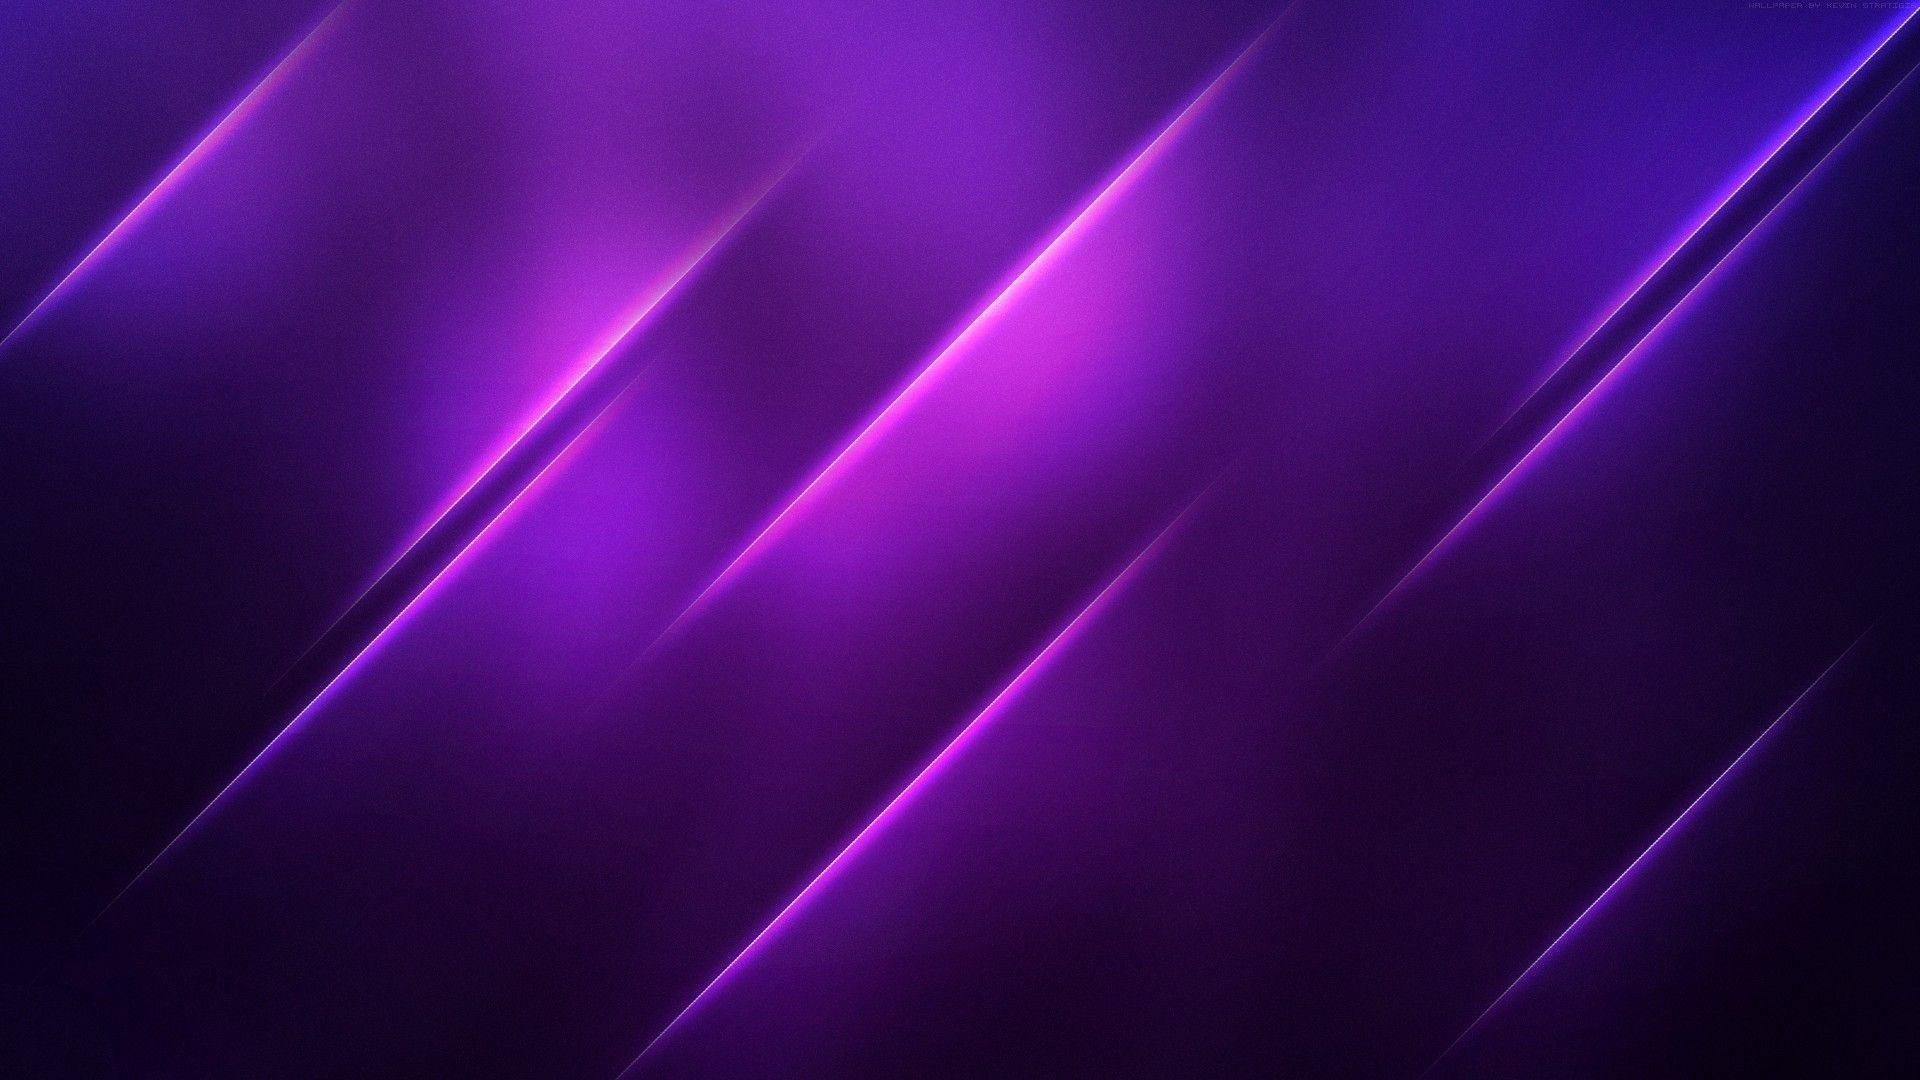 Solid Purple Backgrounds, wallpaper, Solid Purple Backgrounds hd .